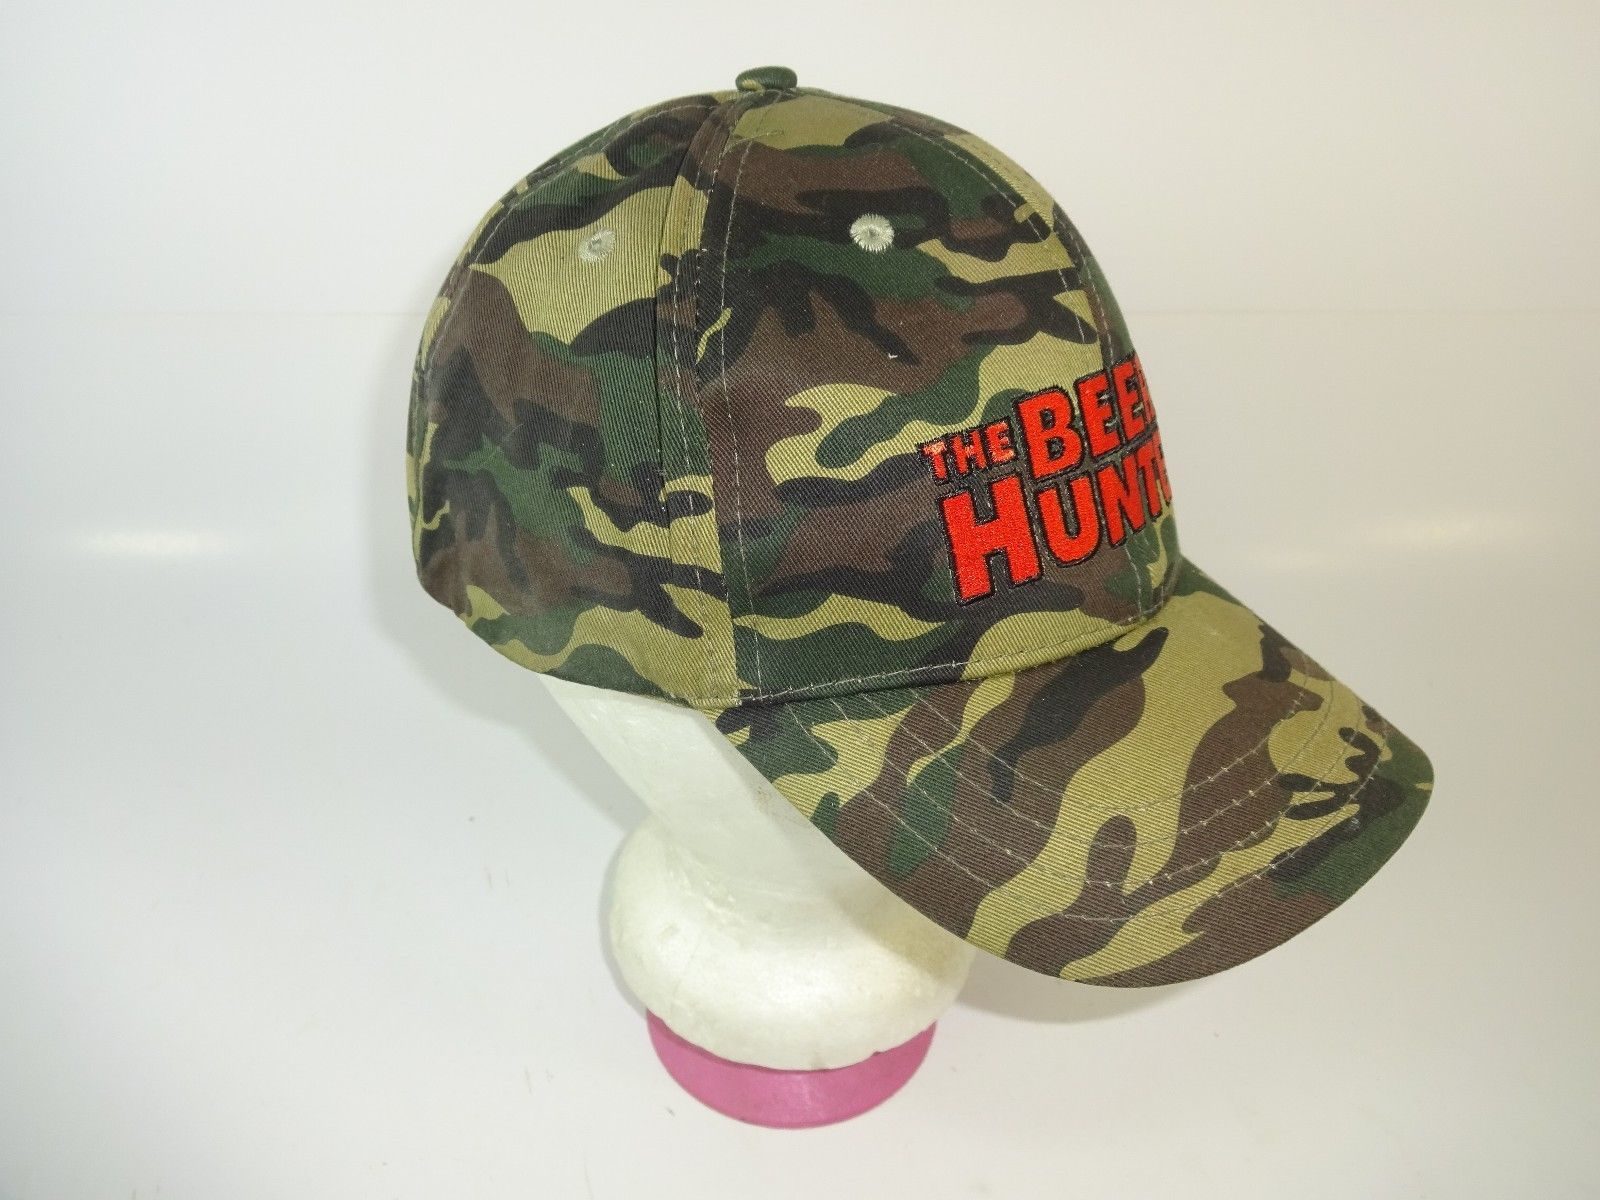 1e6652c03d7839 Vintage The Beer Hunter Adjustable Cap / Hat and 50 similar items